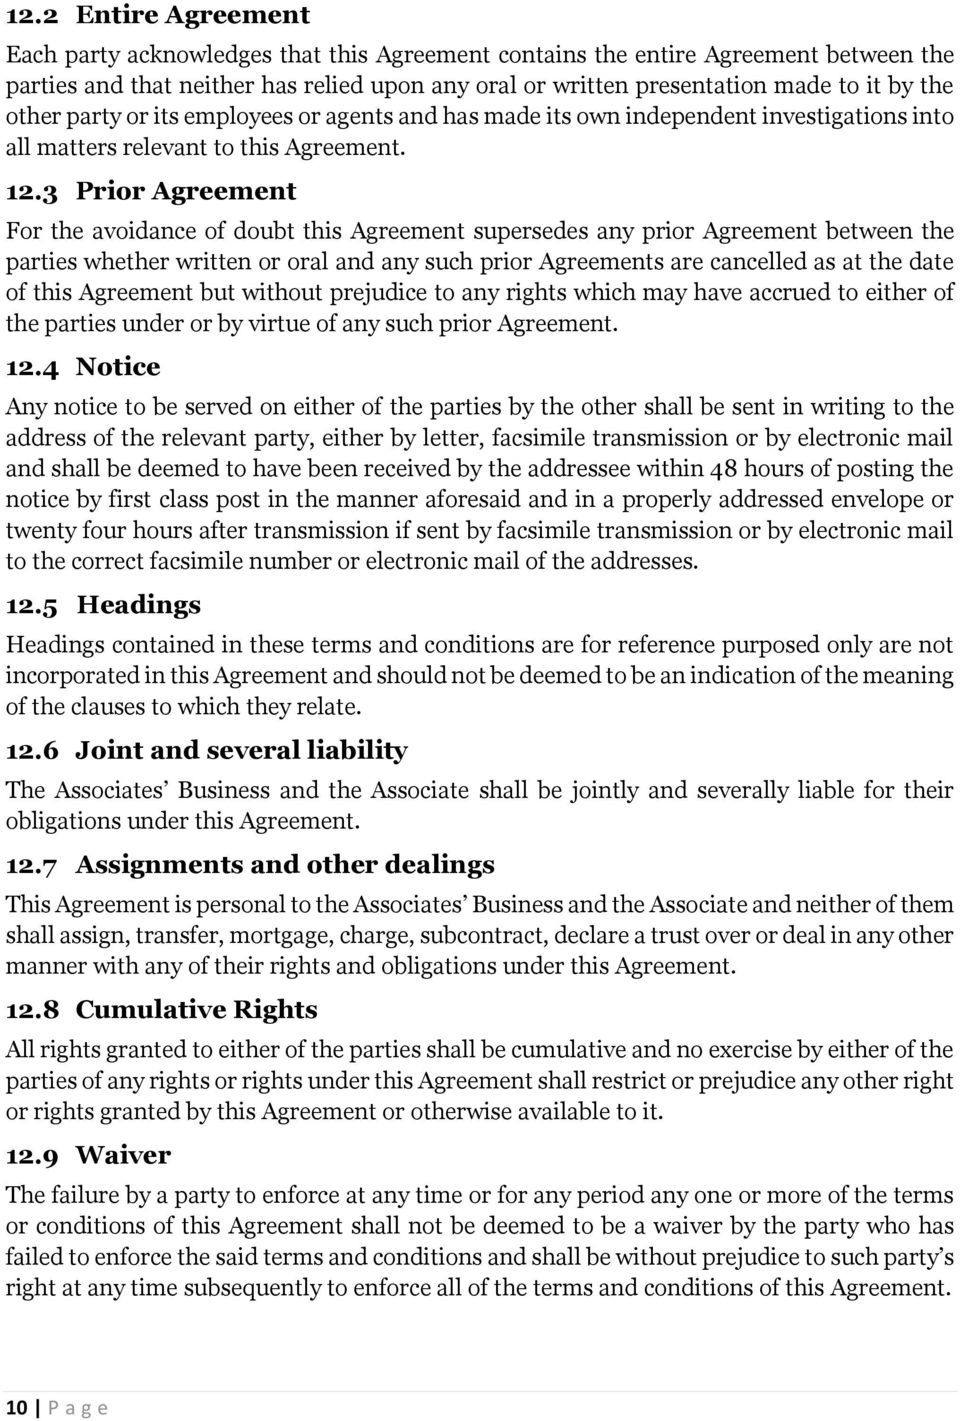 3 Prior Agreement For the avoidance of doubt this Agreement supersedes any prior Agreement between the parties whether written or oral and any such prior Agreements are cancelled as at the date of